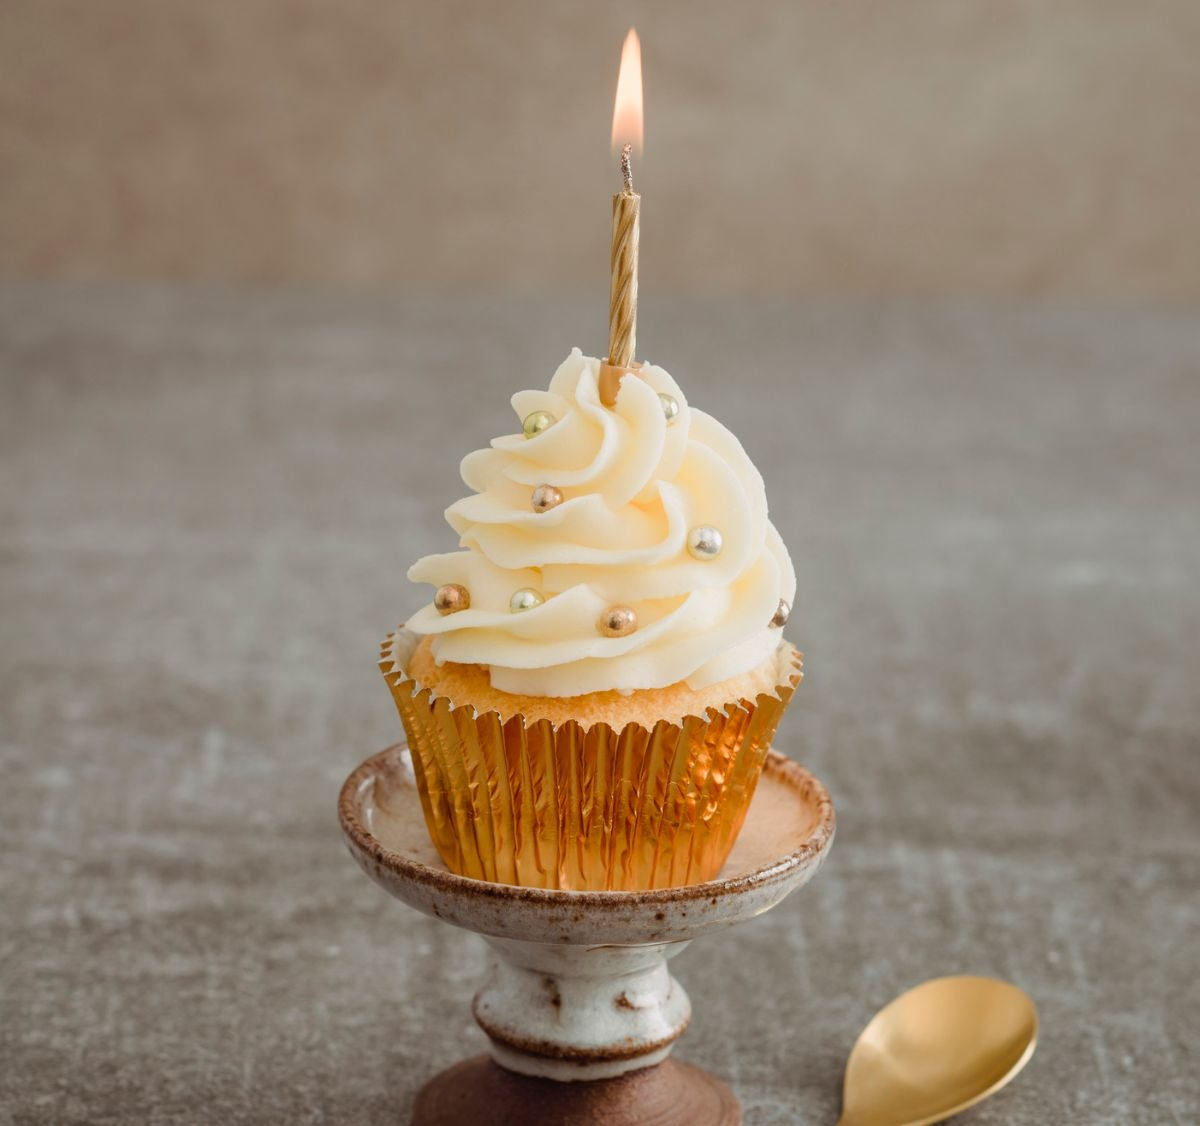 A vanilla cupcake with a sparkler wrapper and sparkly candies on top